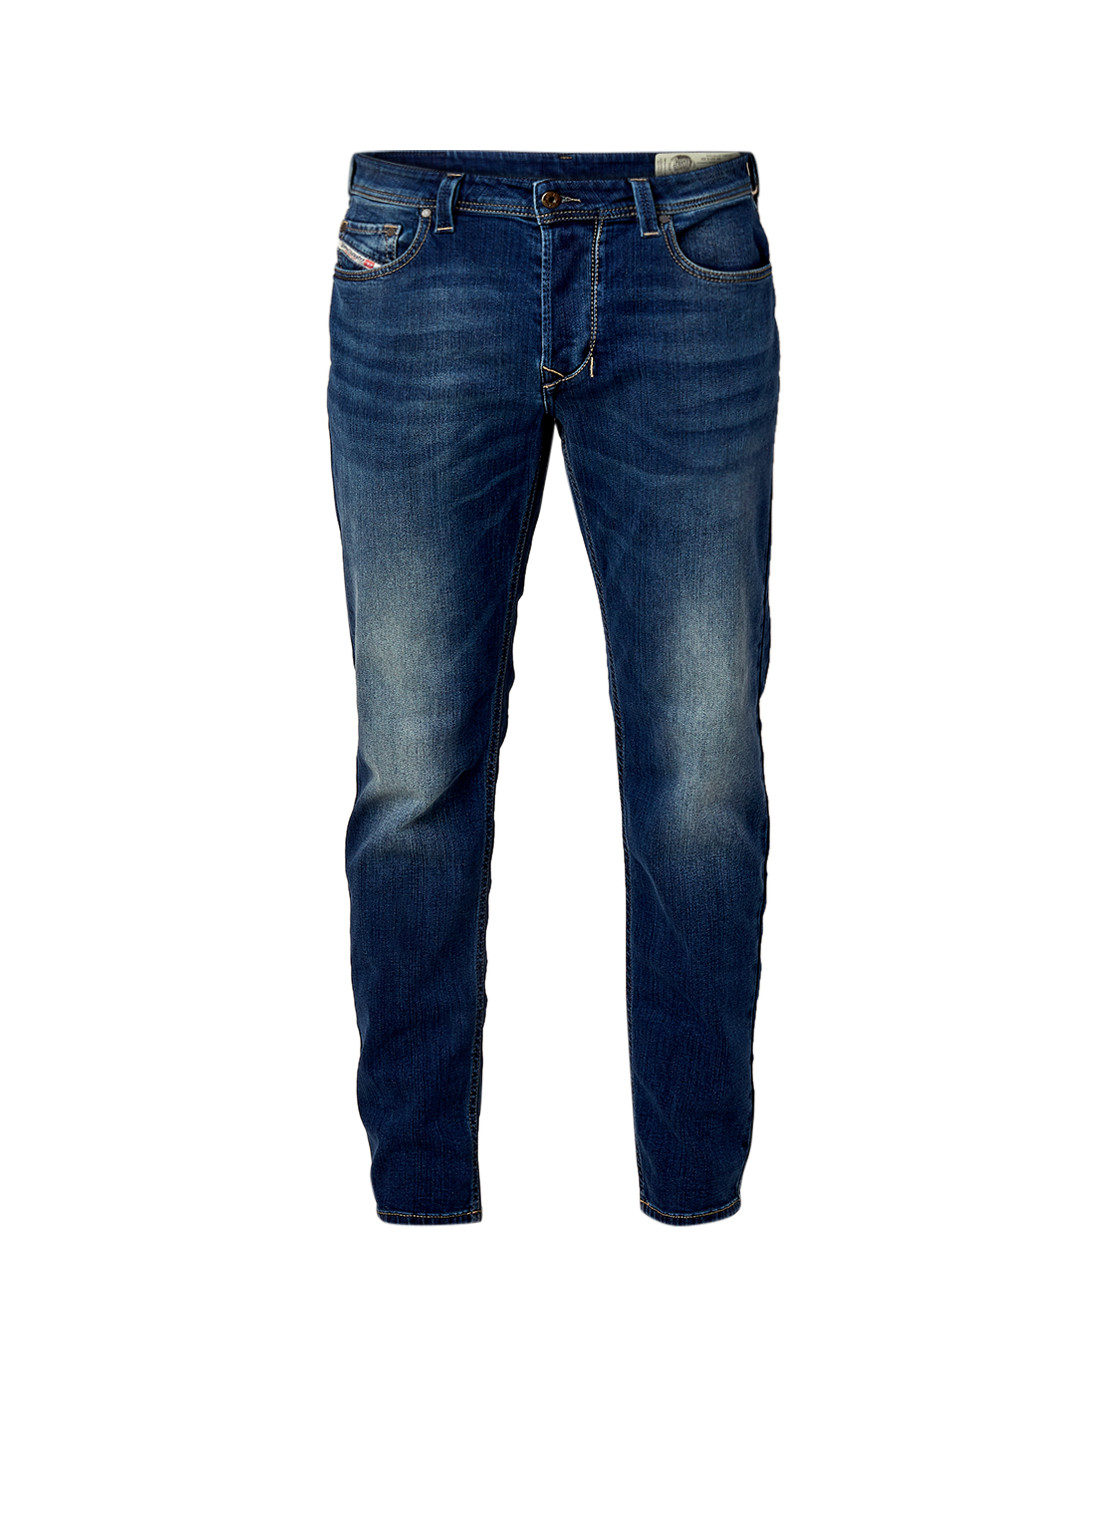 Diesel Larkee-Beex straight fit jeans